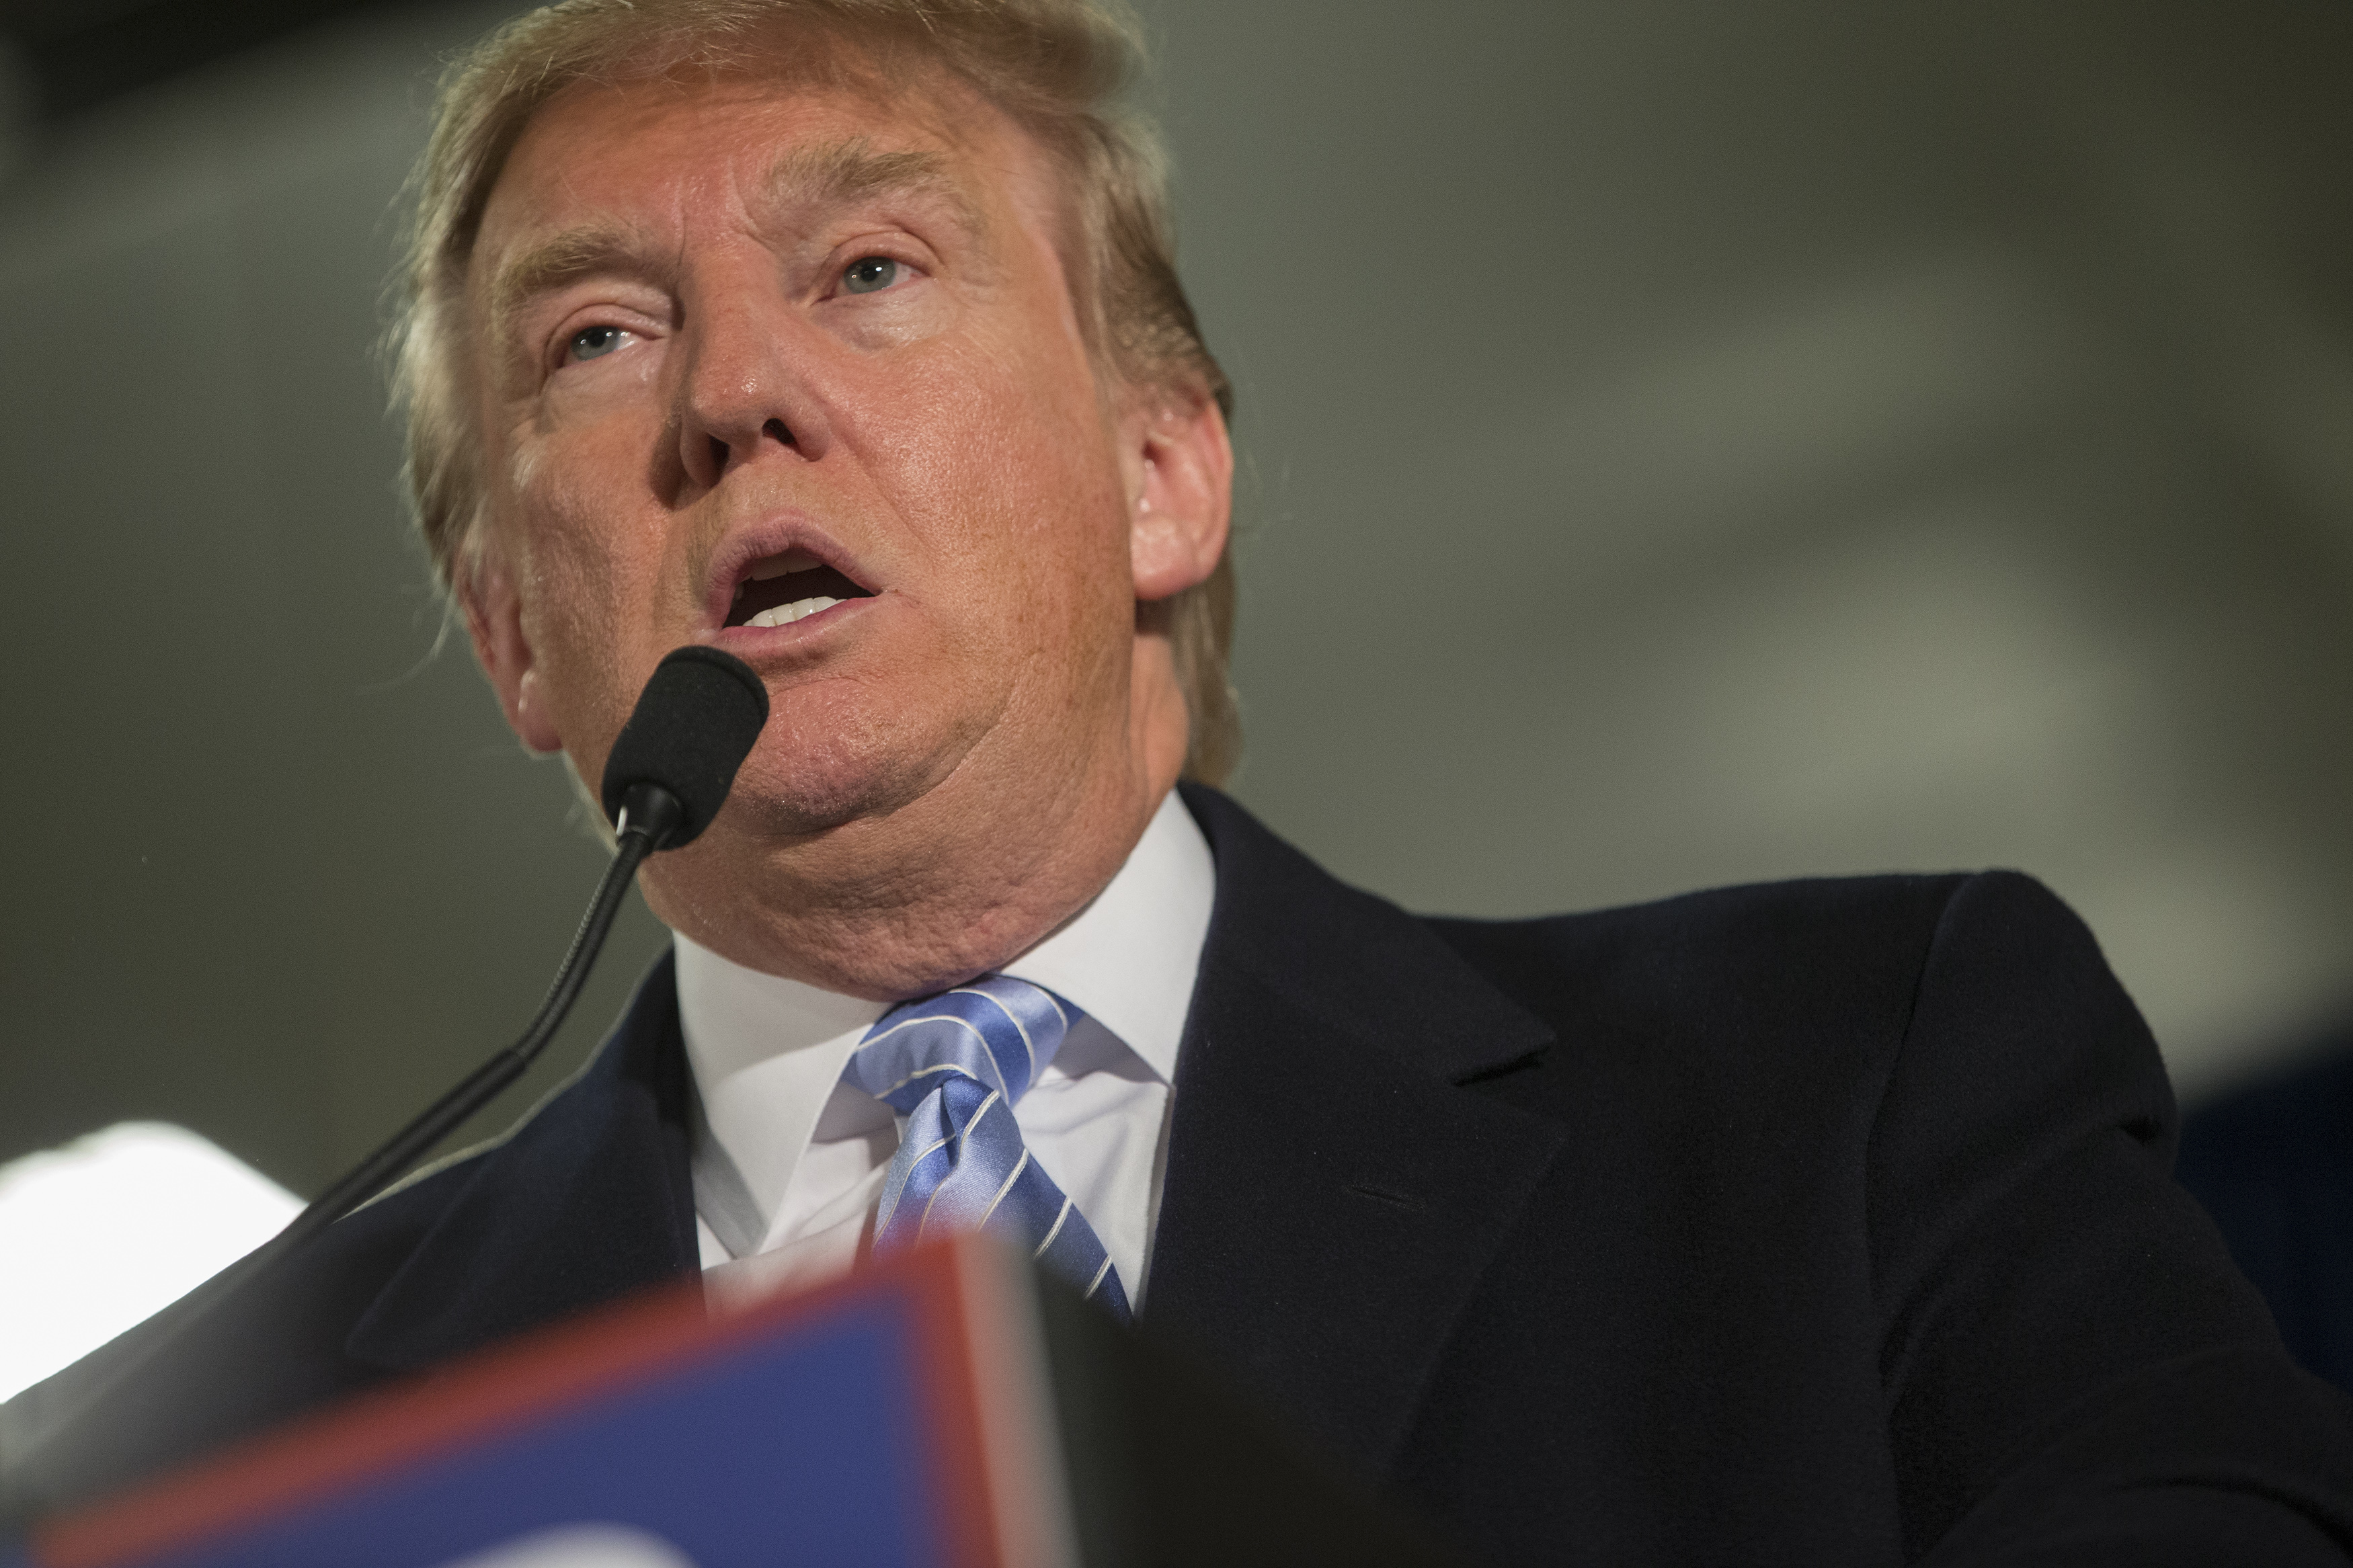 Donald Trump speaks at Hansen Agriculture Student Learning Center at Iowa State University on January 19, 2016 in Ames, IA.